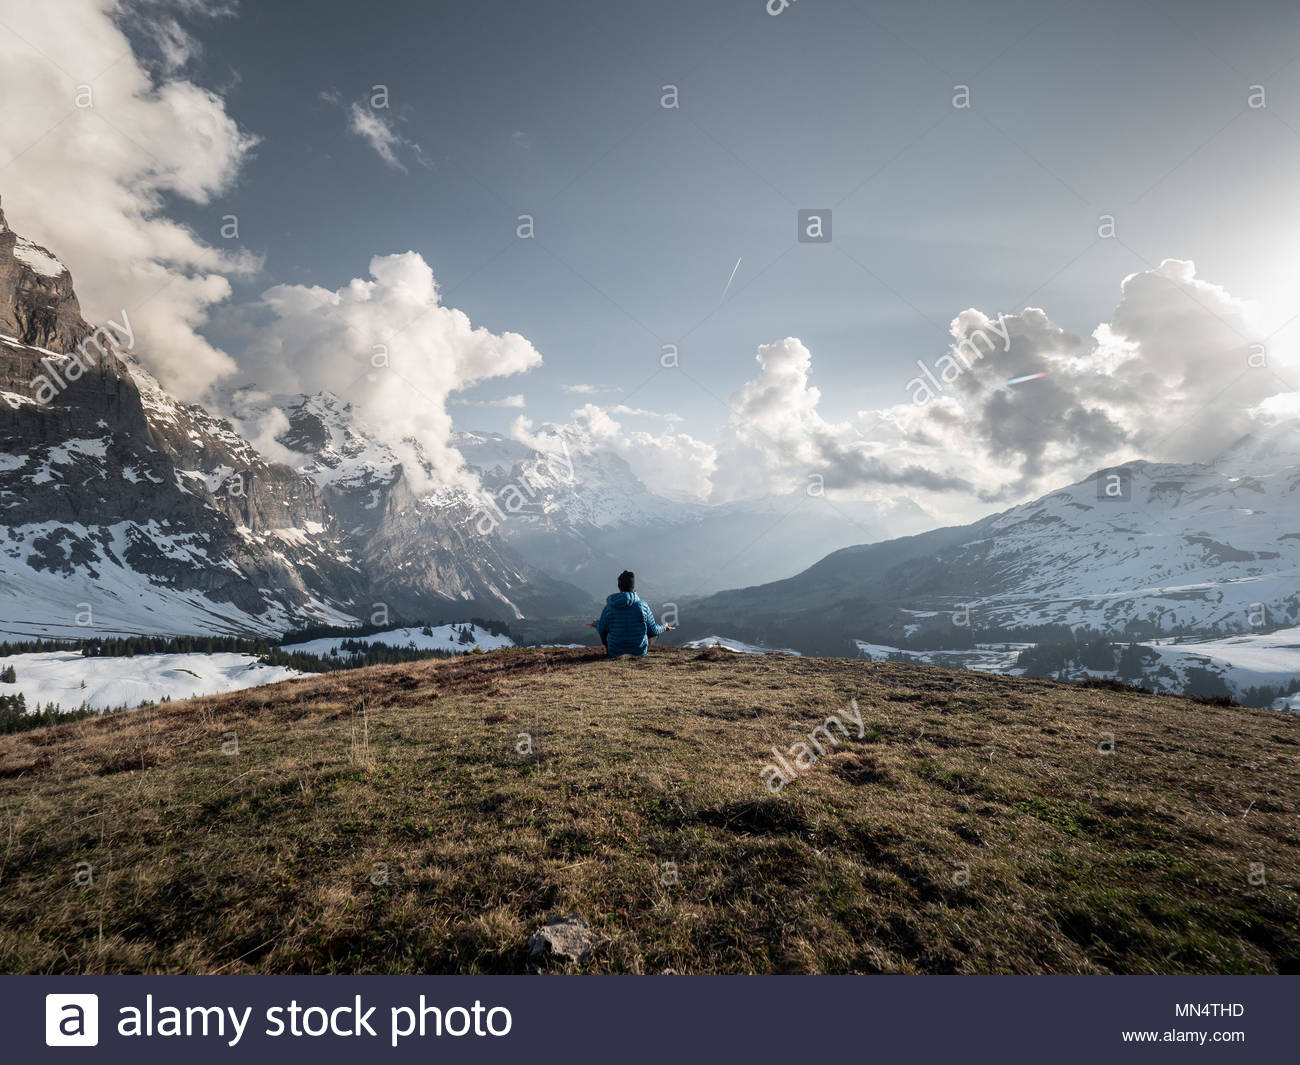 single man sitting on hilltop overlooking the surrounding mountain range and meditating, idyllic alpine scene - Stock Image